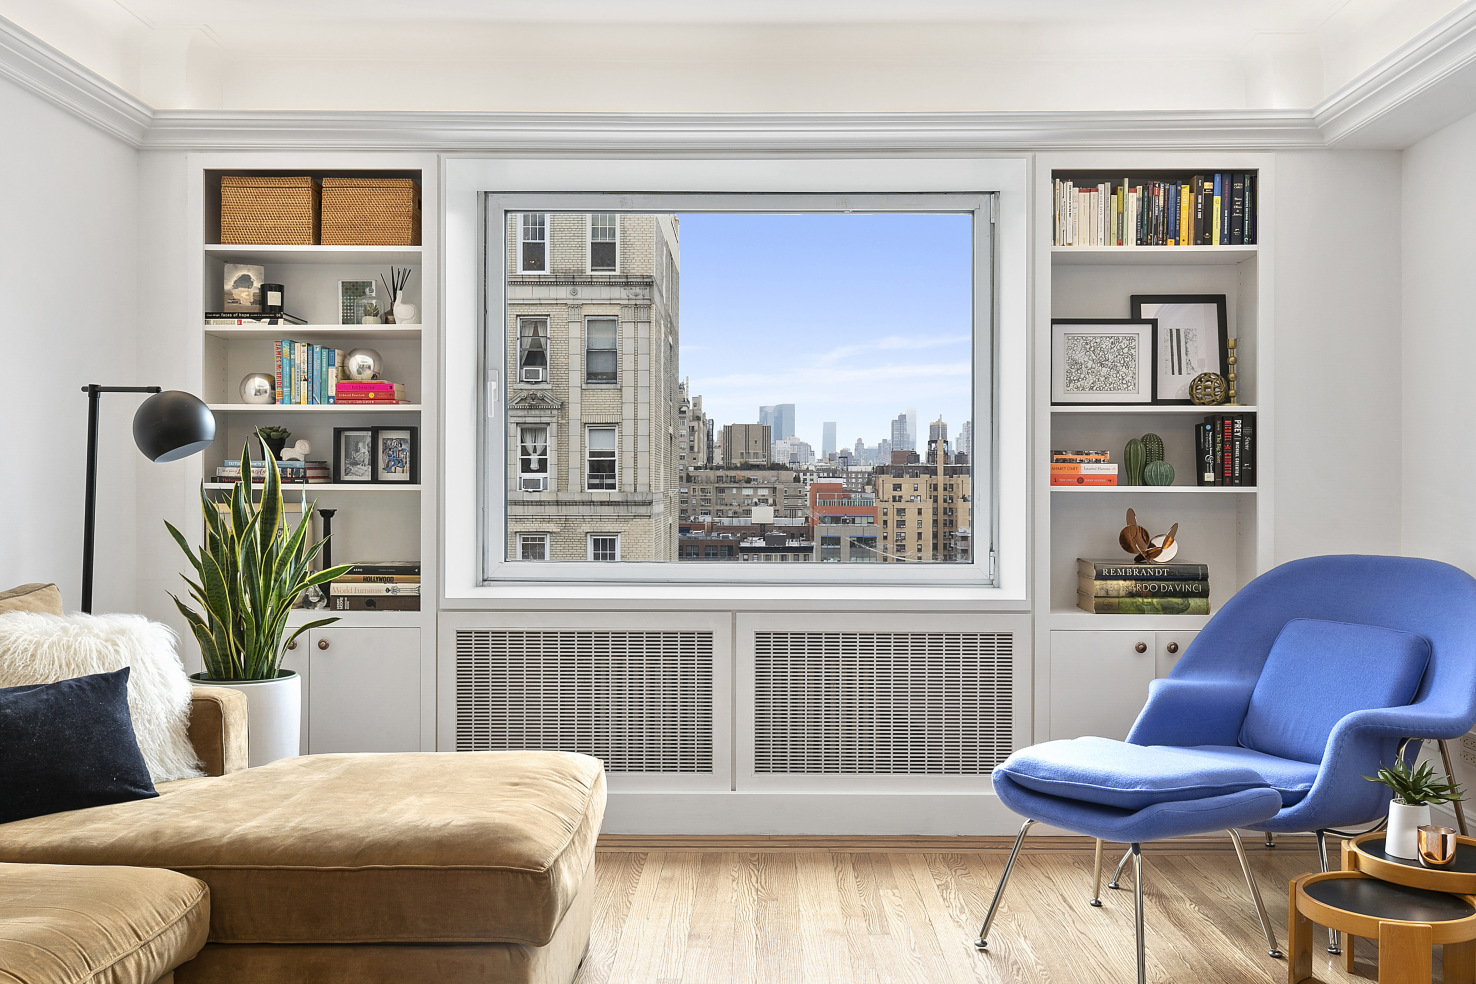 Apartment for sale at 7 West 96th Street, Apt 15-A